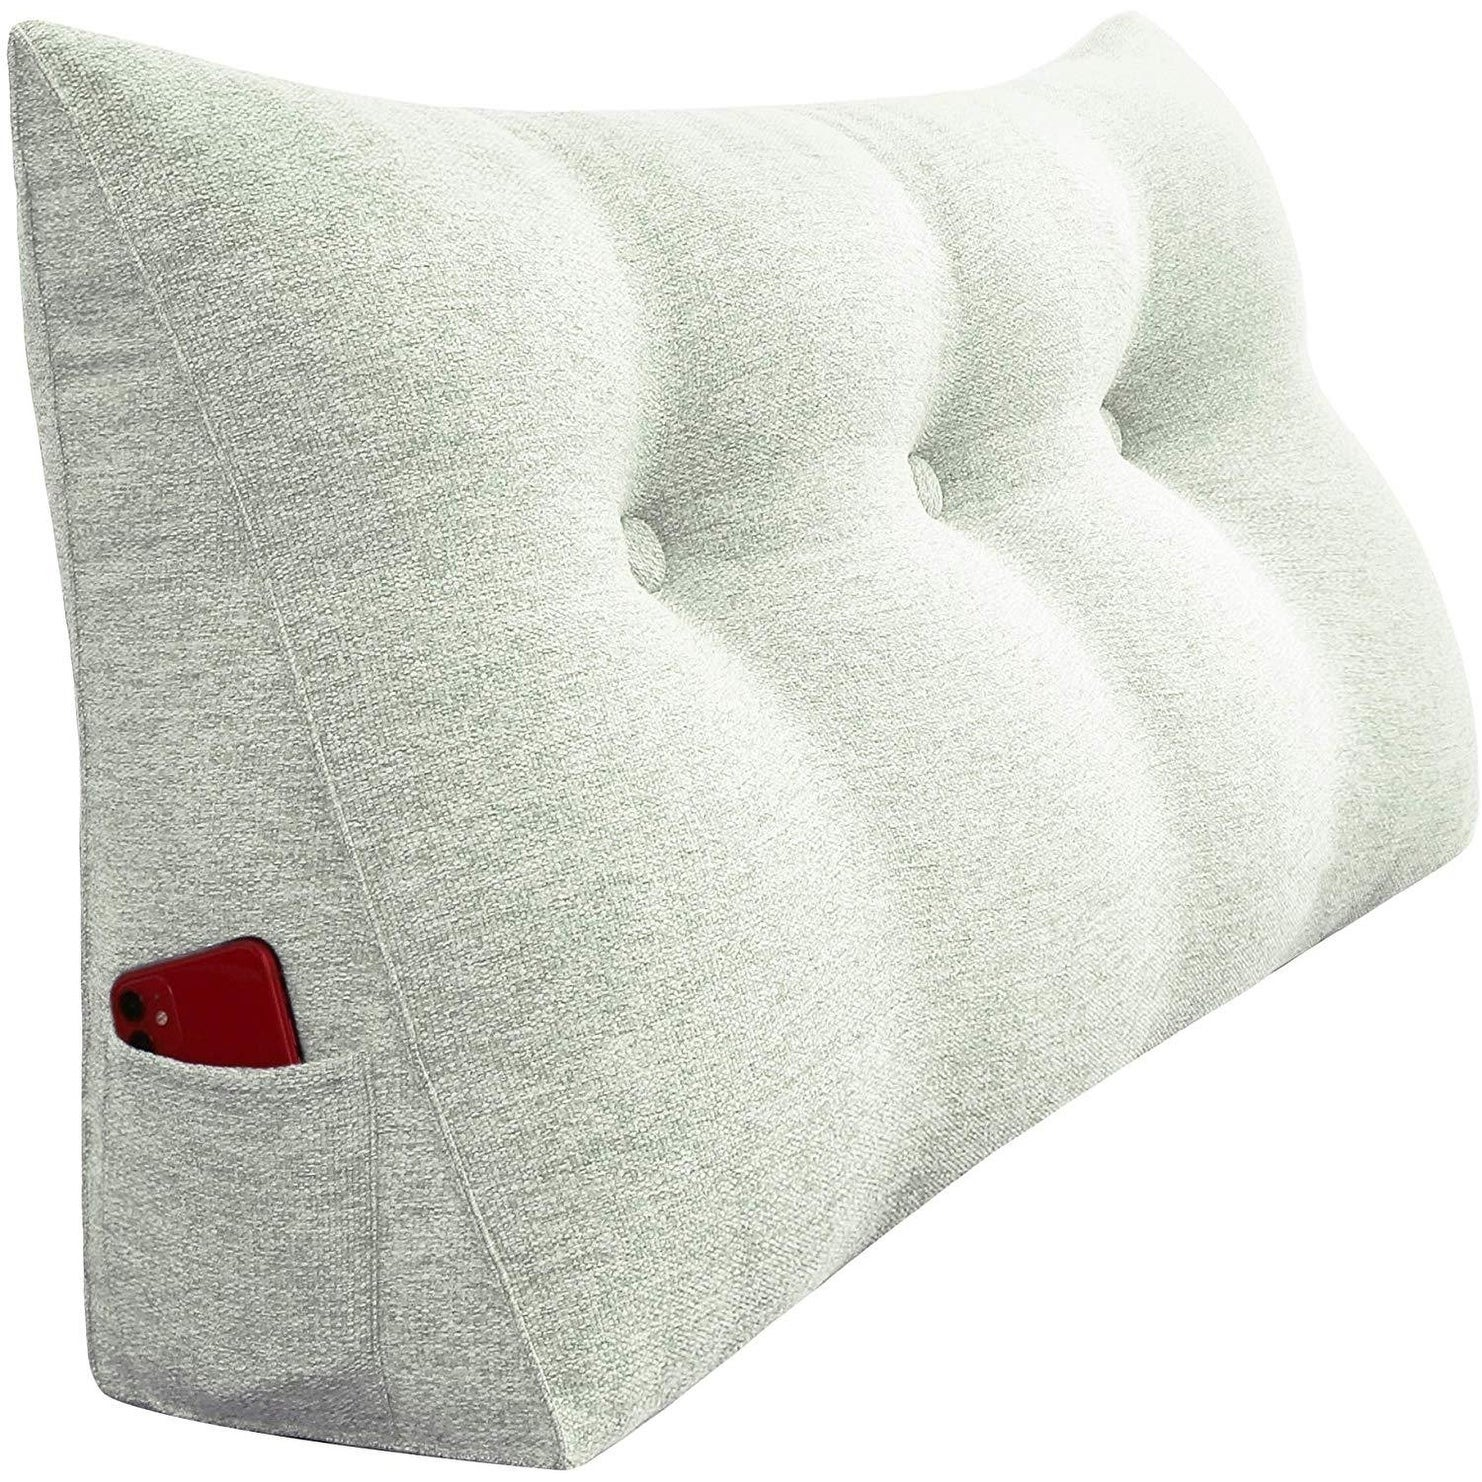 Bed Wedge Pillow Bolster Elevation Cushion Backrest Cushion Washable Cover~White